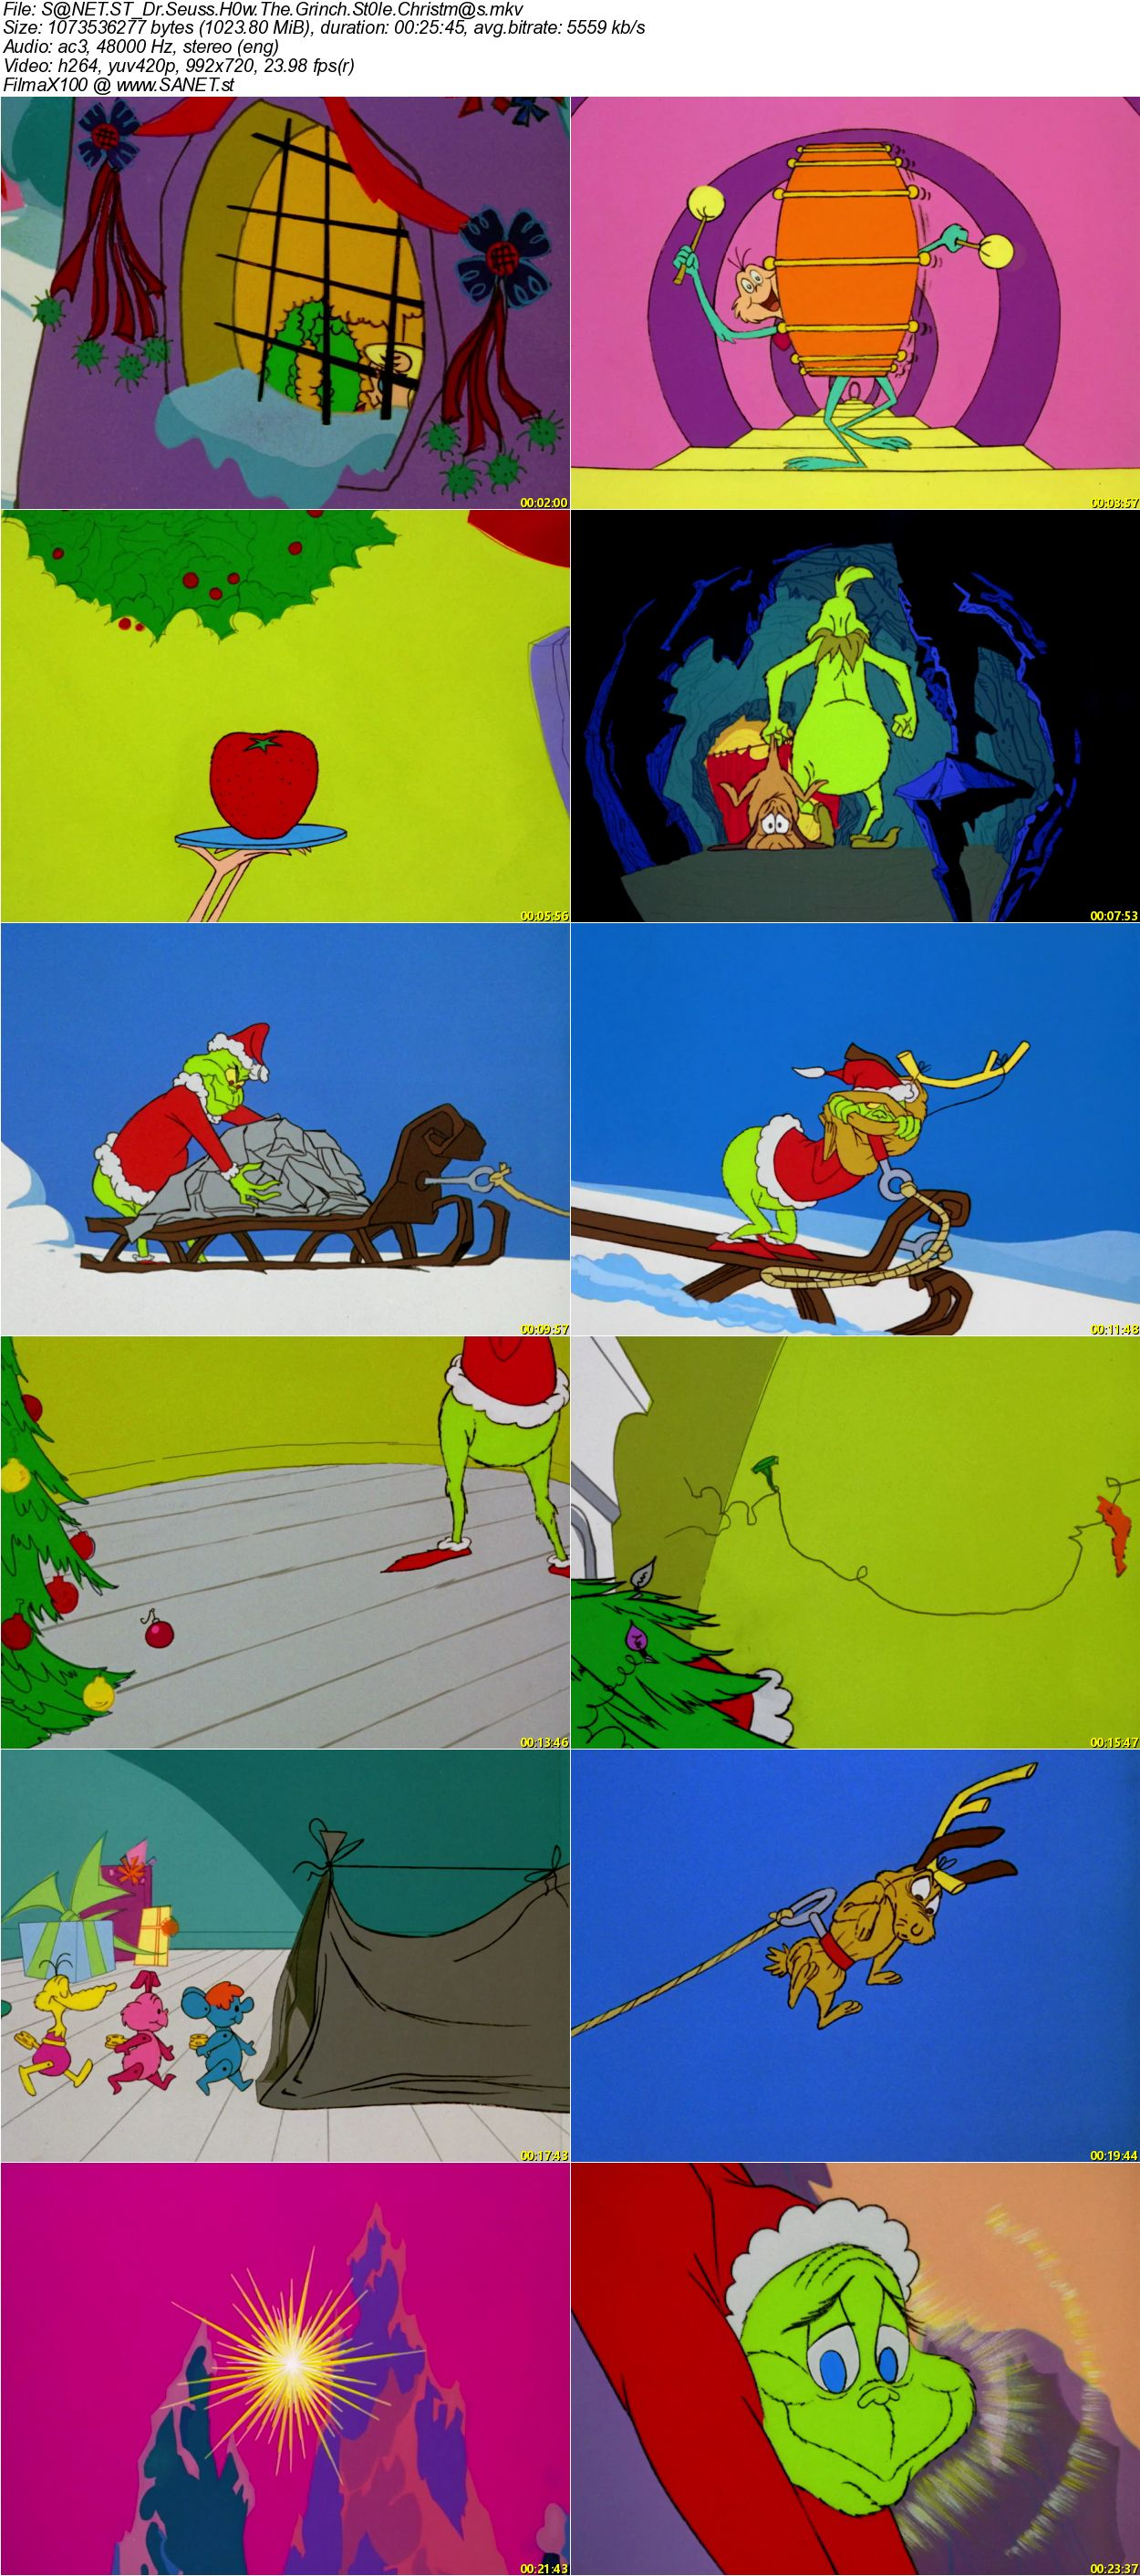 How The Grinch Stole Christmas 1966.Download Dr Seuss How The Grinch Stole Christmas 1966 720p